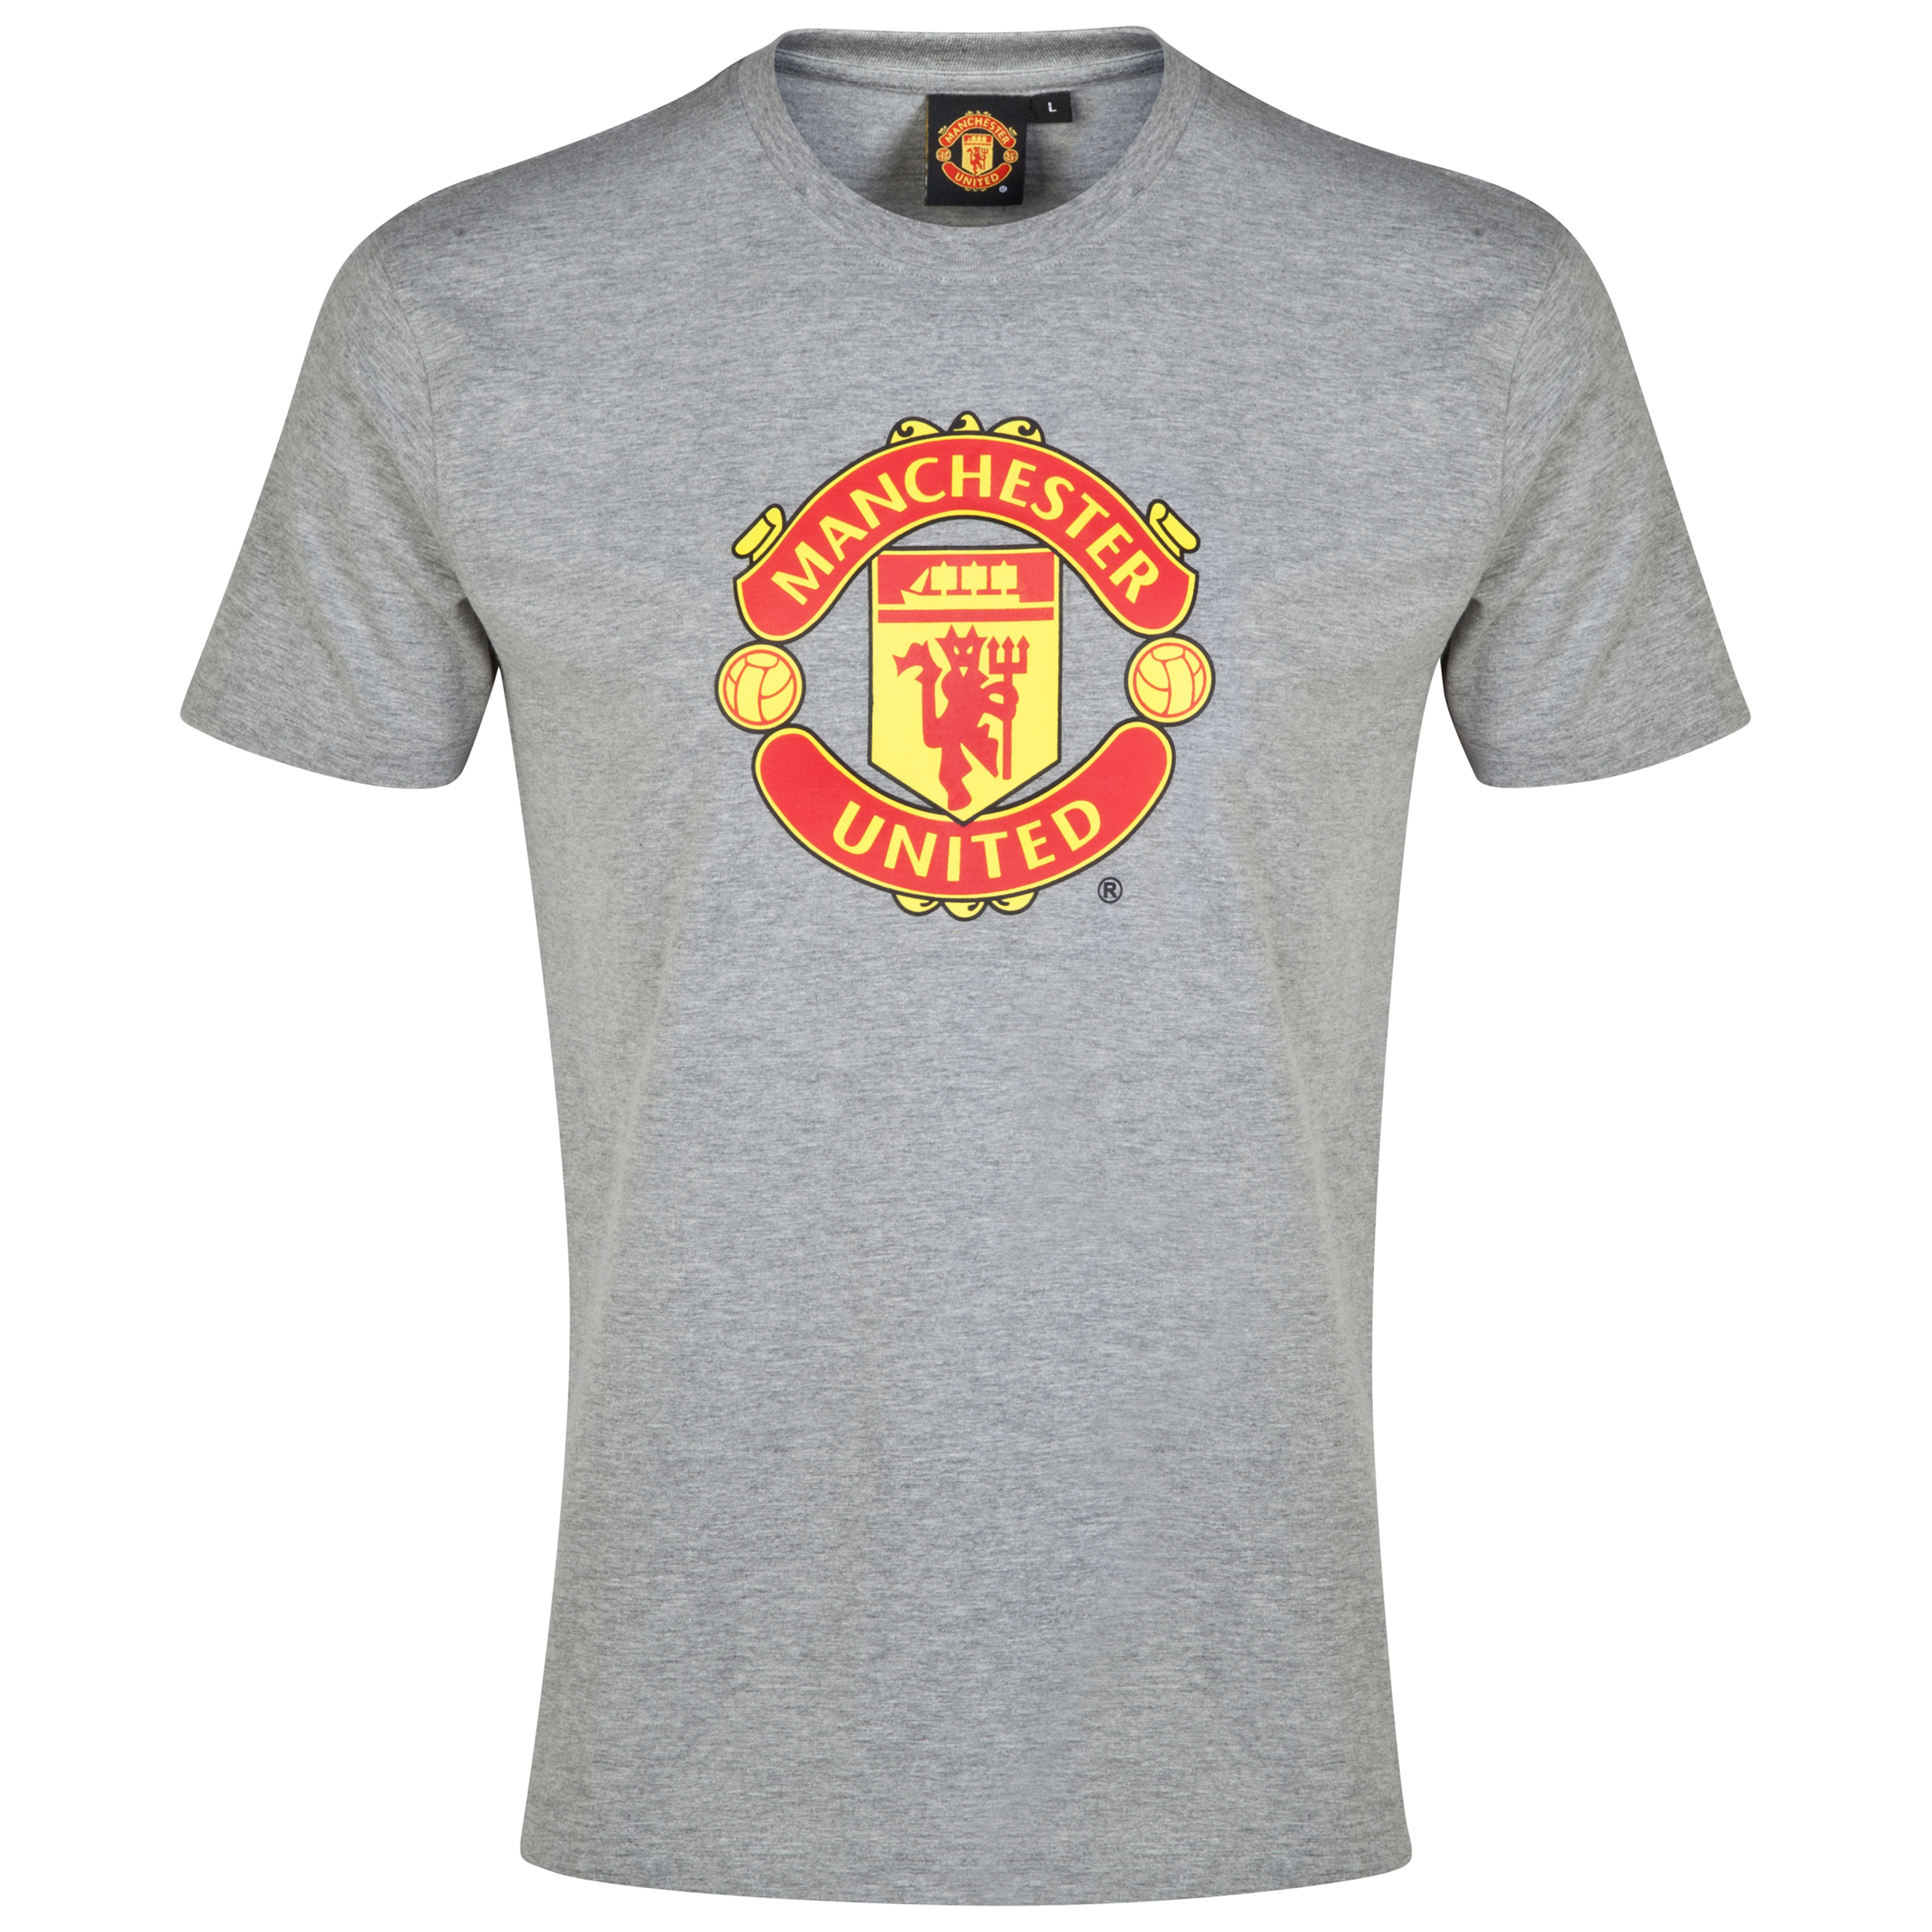 Manchester United Crest T-Shirt - Grey Marl - Boys